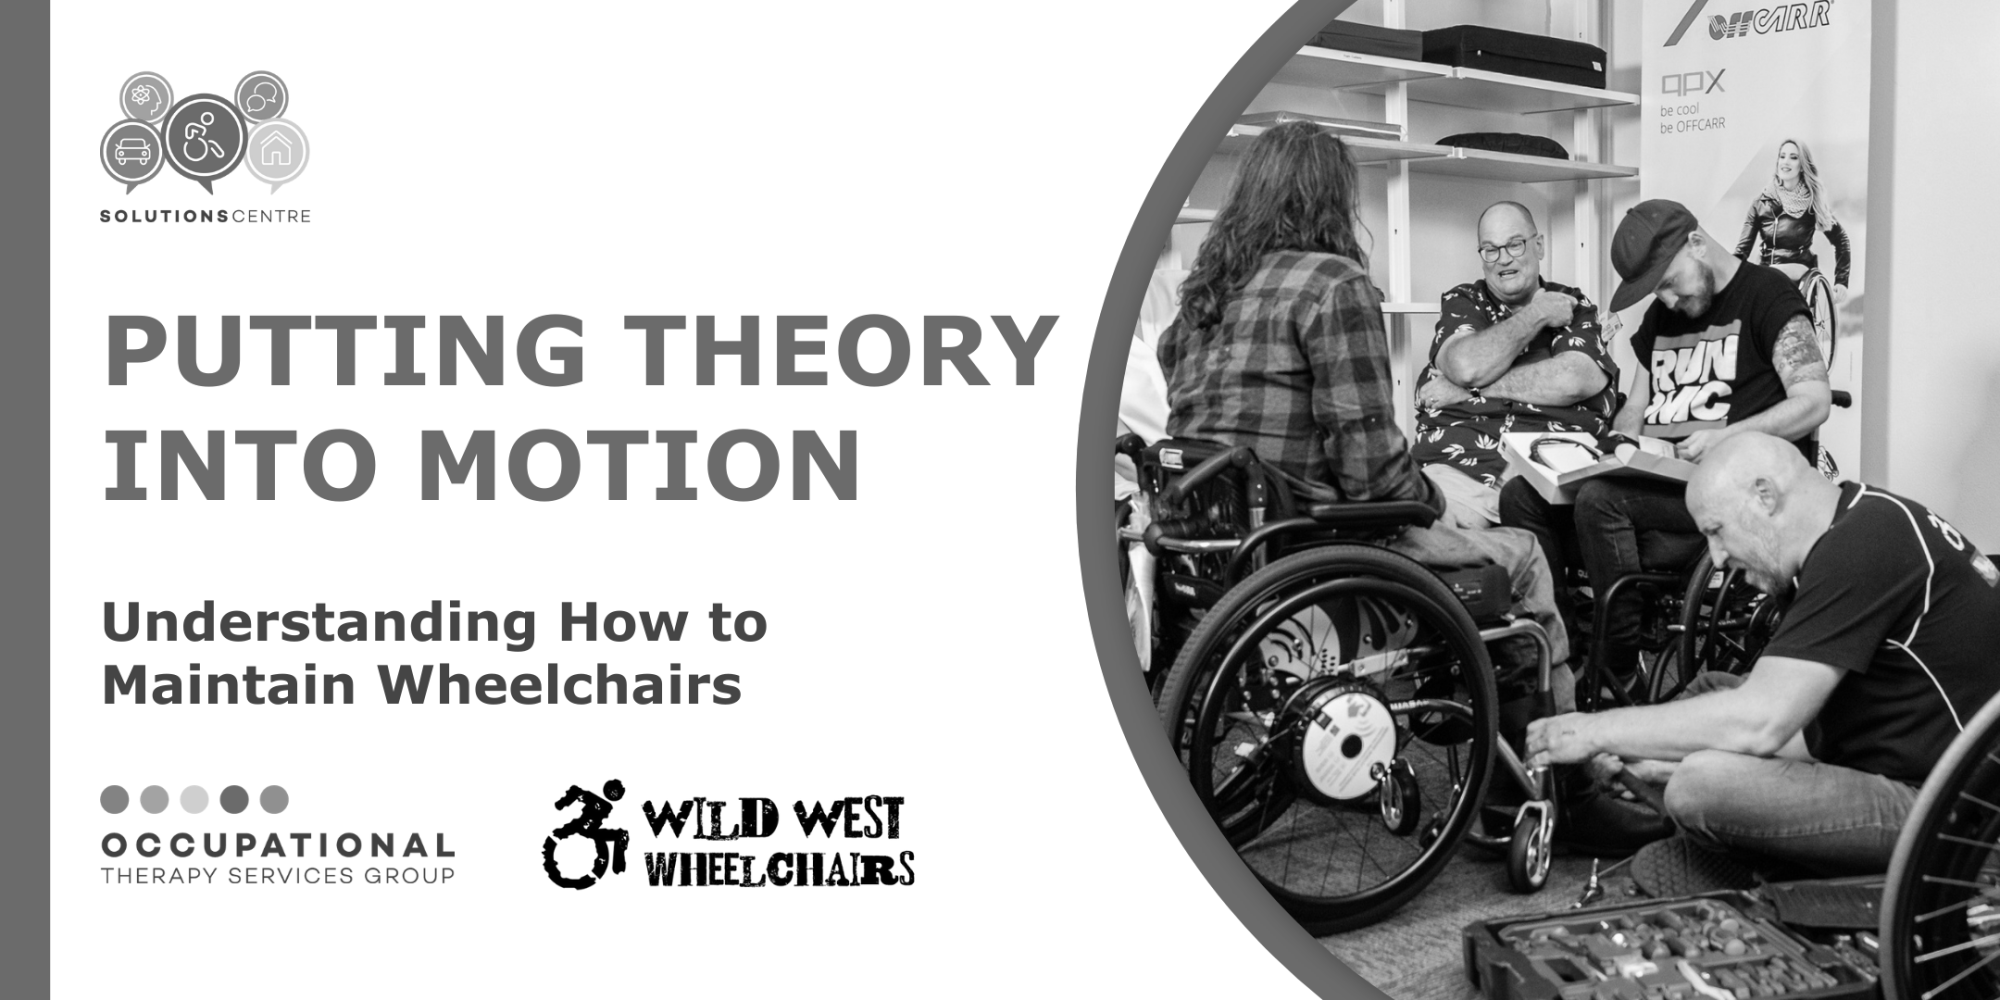 PUTTING THEORY INTO MOTION